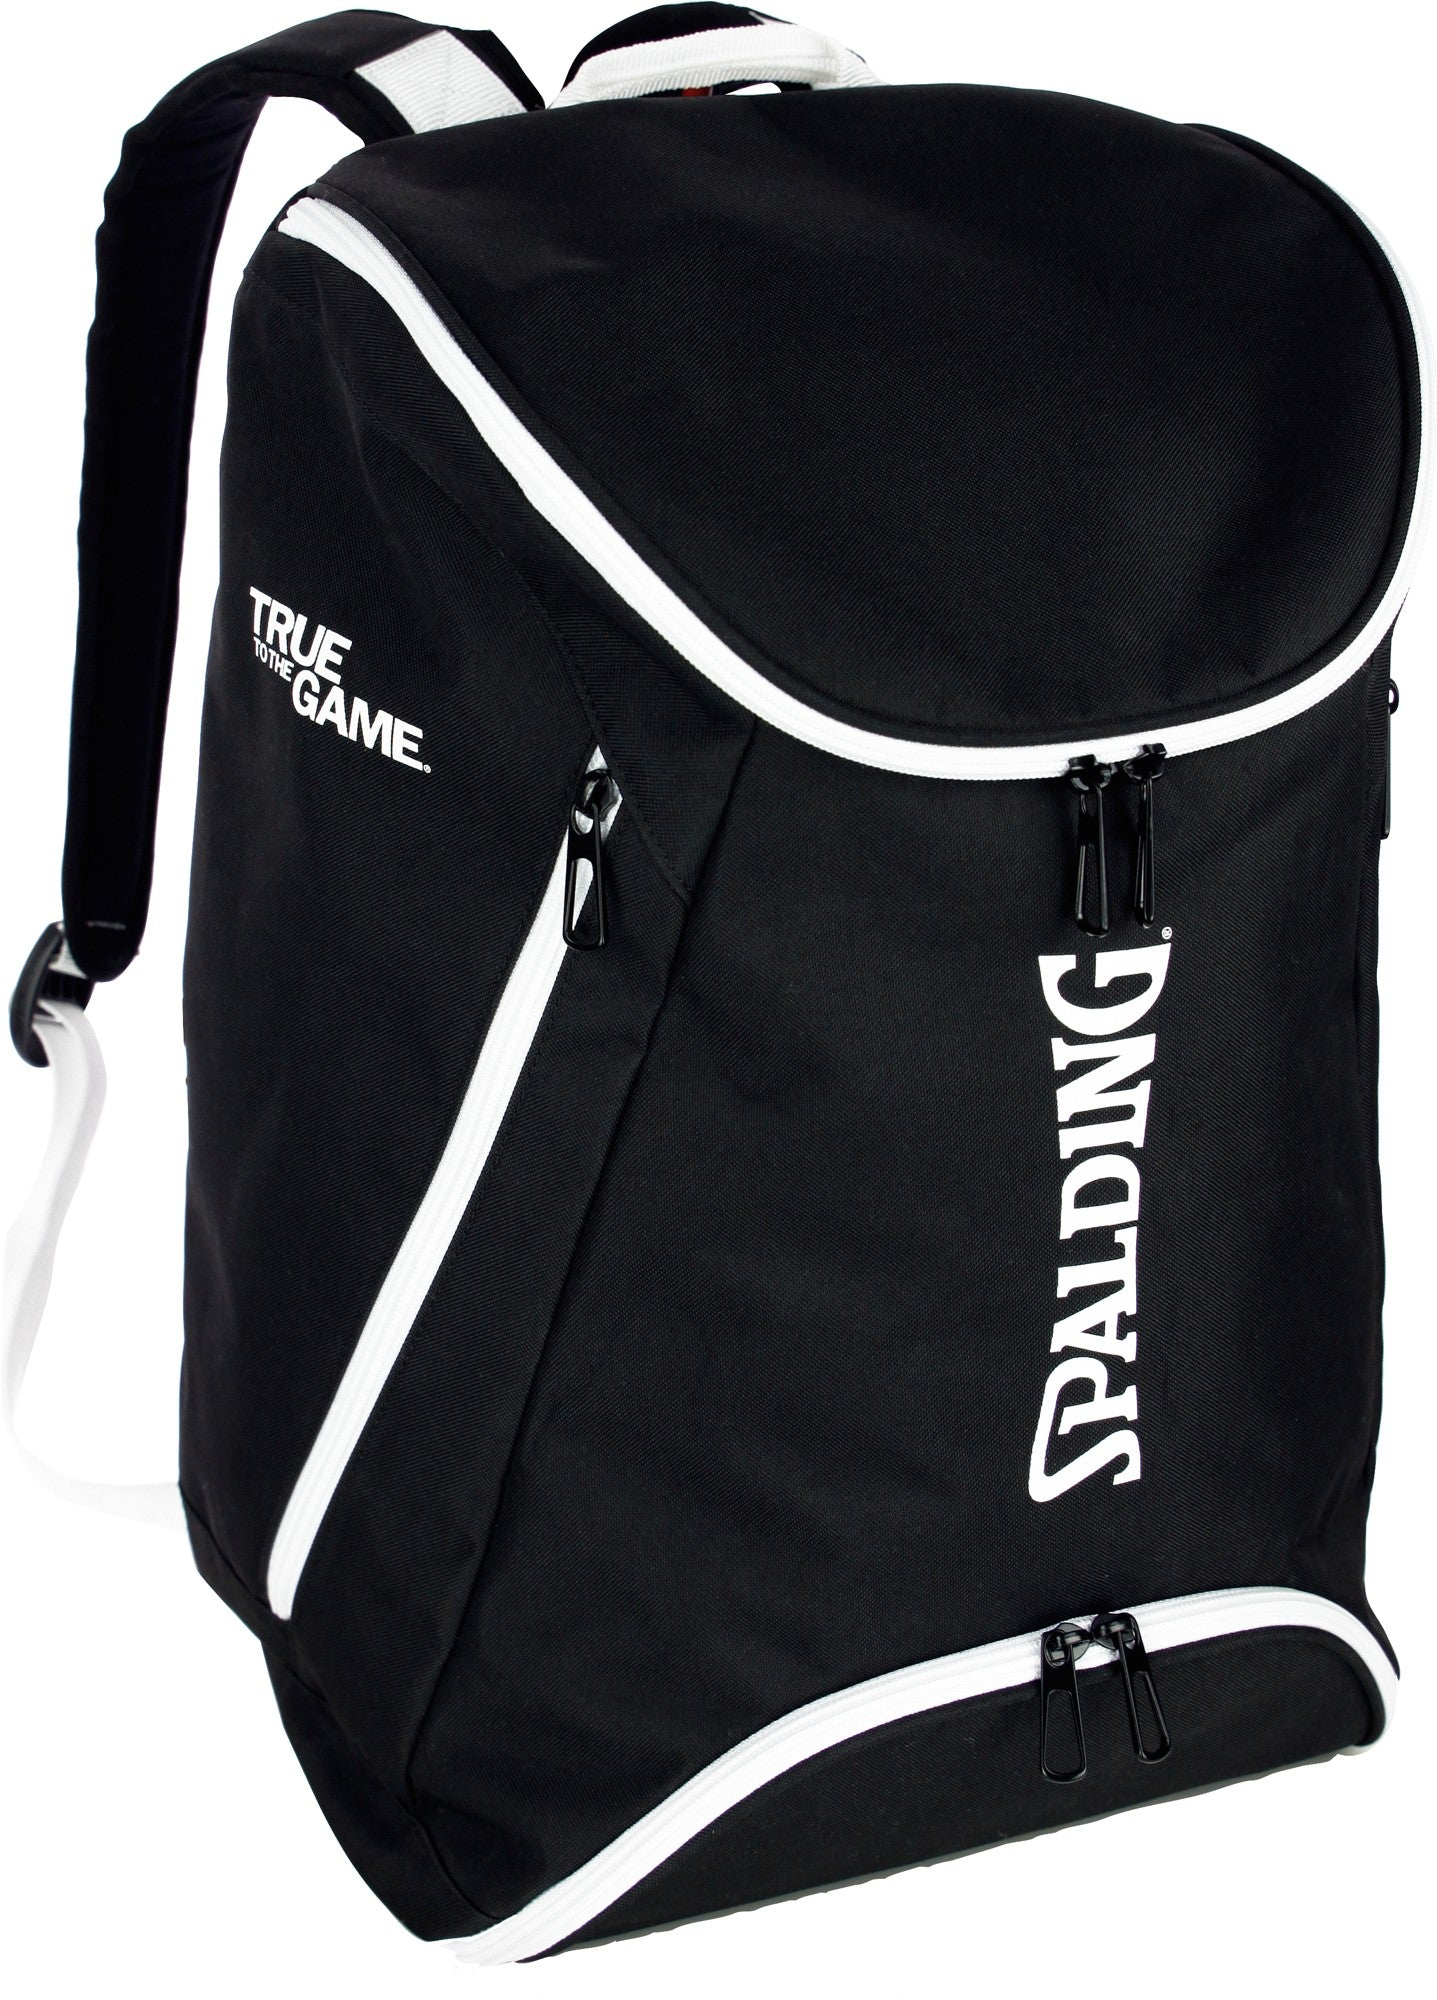 Spalding Backpack - Black/White (Bags) SP-300454301